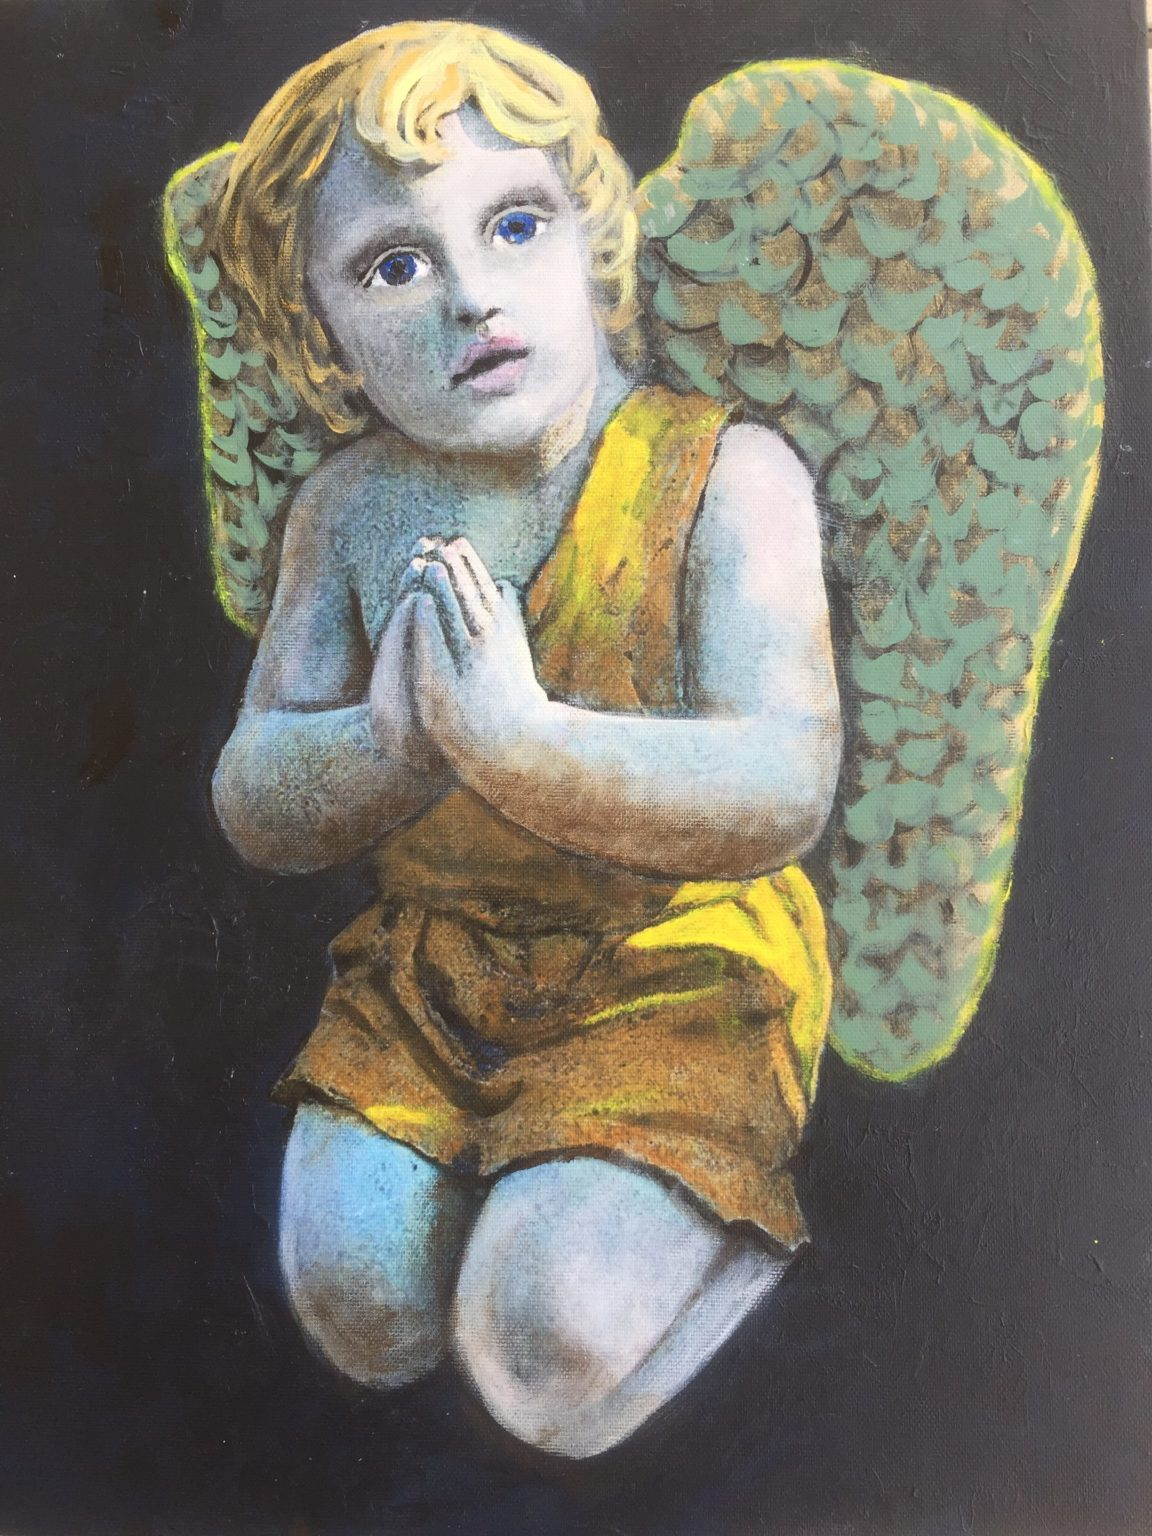 Ravi, The Angel of Healing by Goldie Tremblay